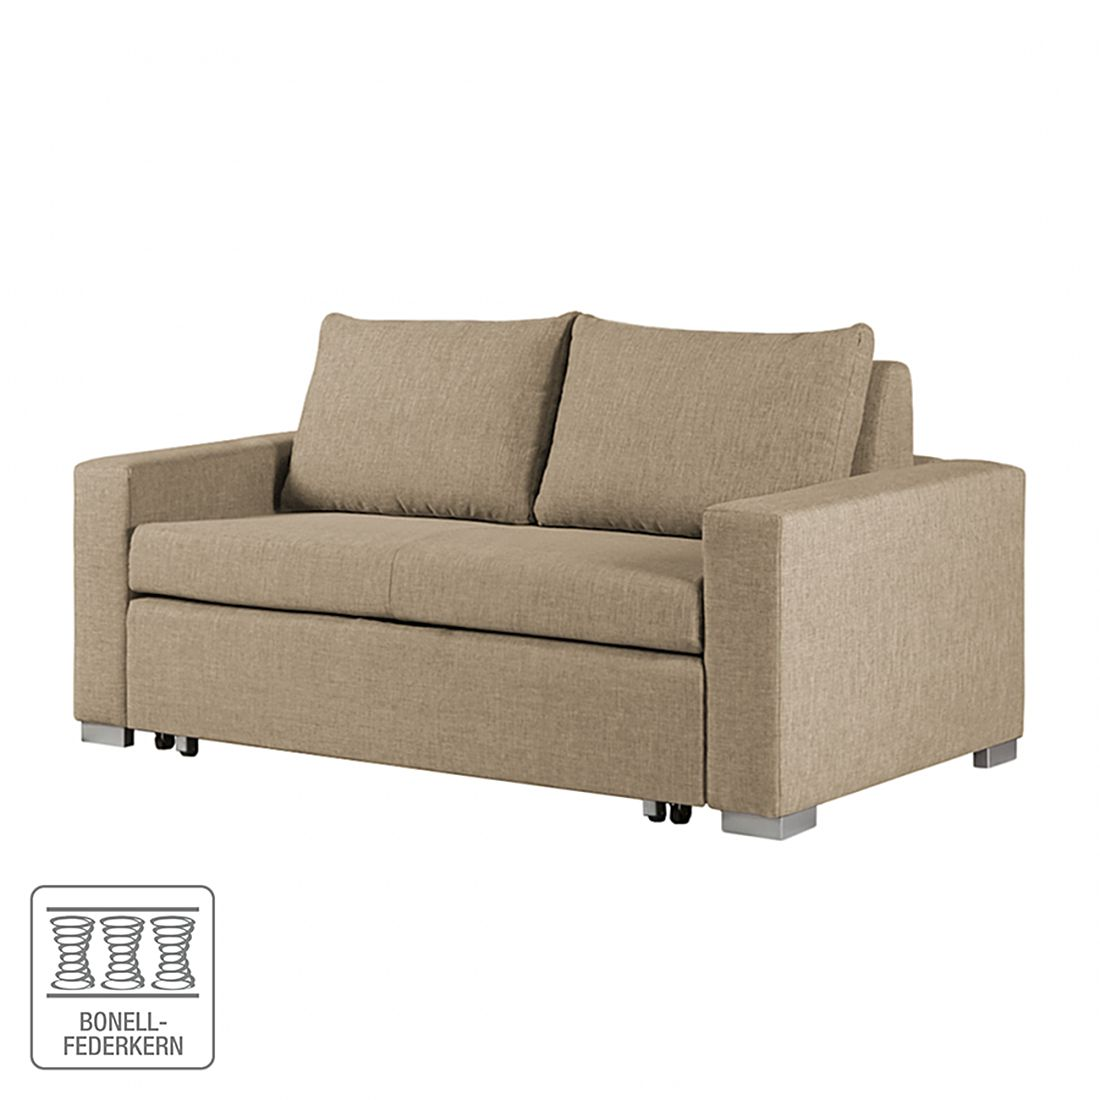 schlafsofa latina webstoff beige lila blumenmuster 150 cm roomscape kaufen. Black Bedroom Furniture Sets. Home Design Ideas